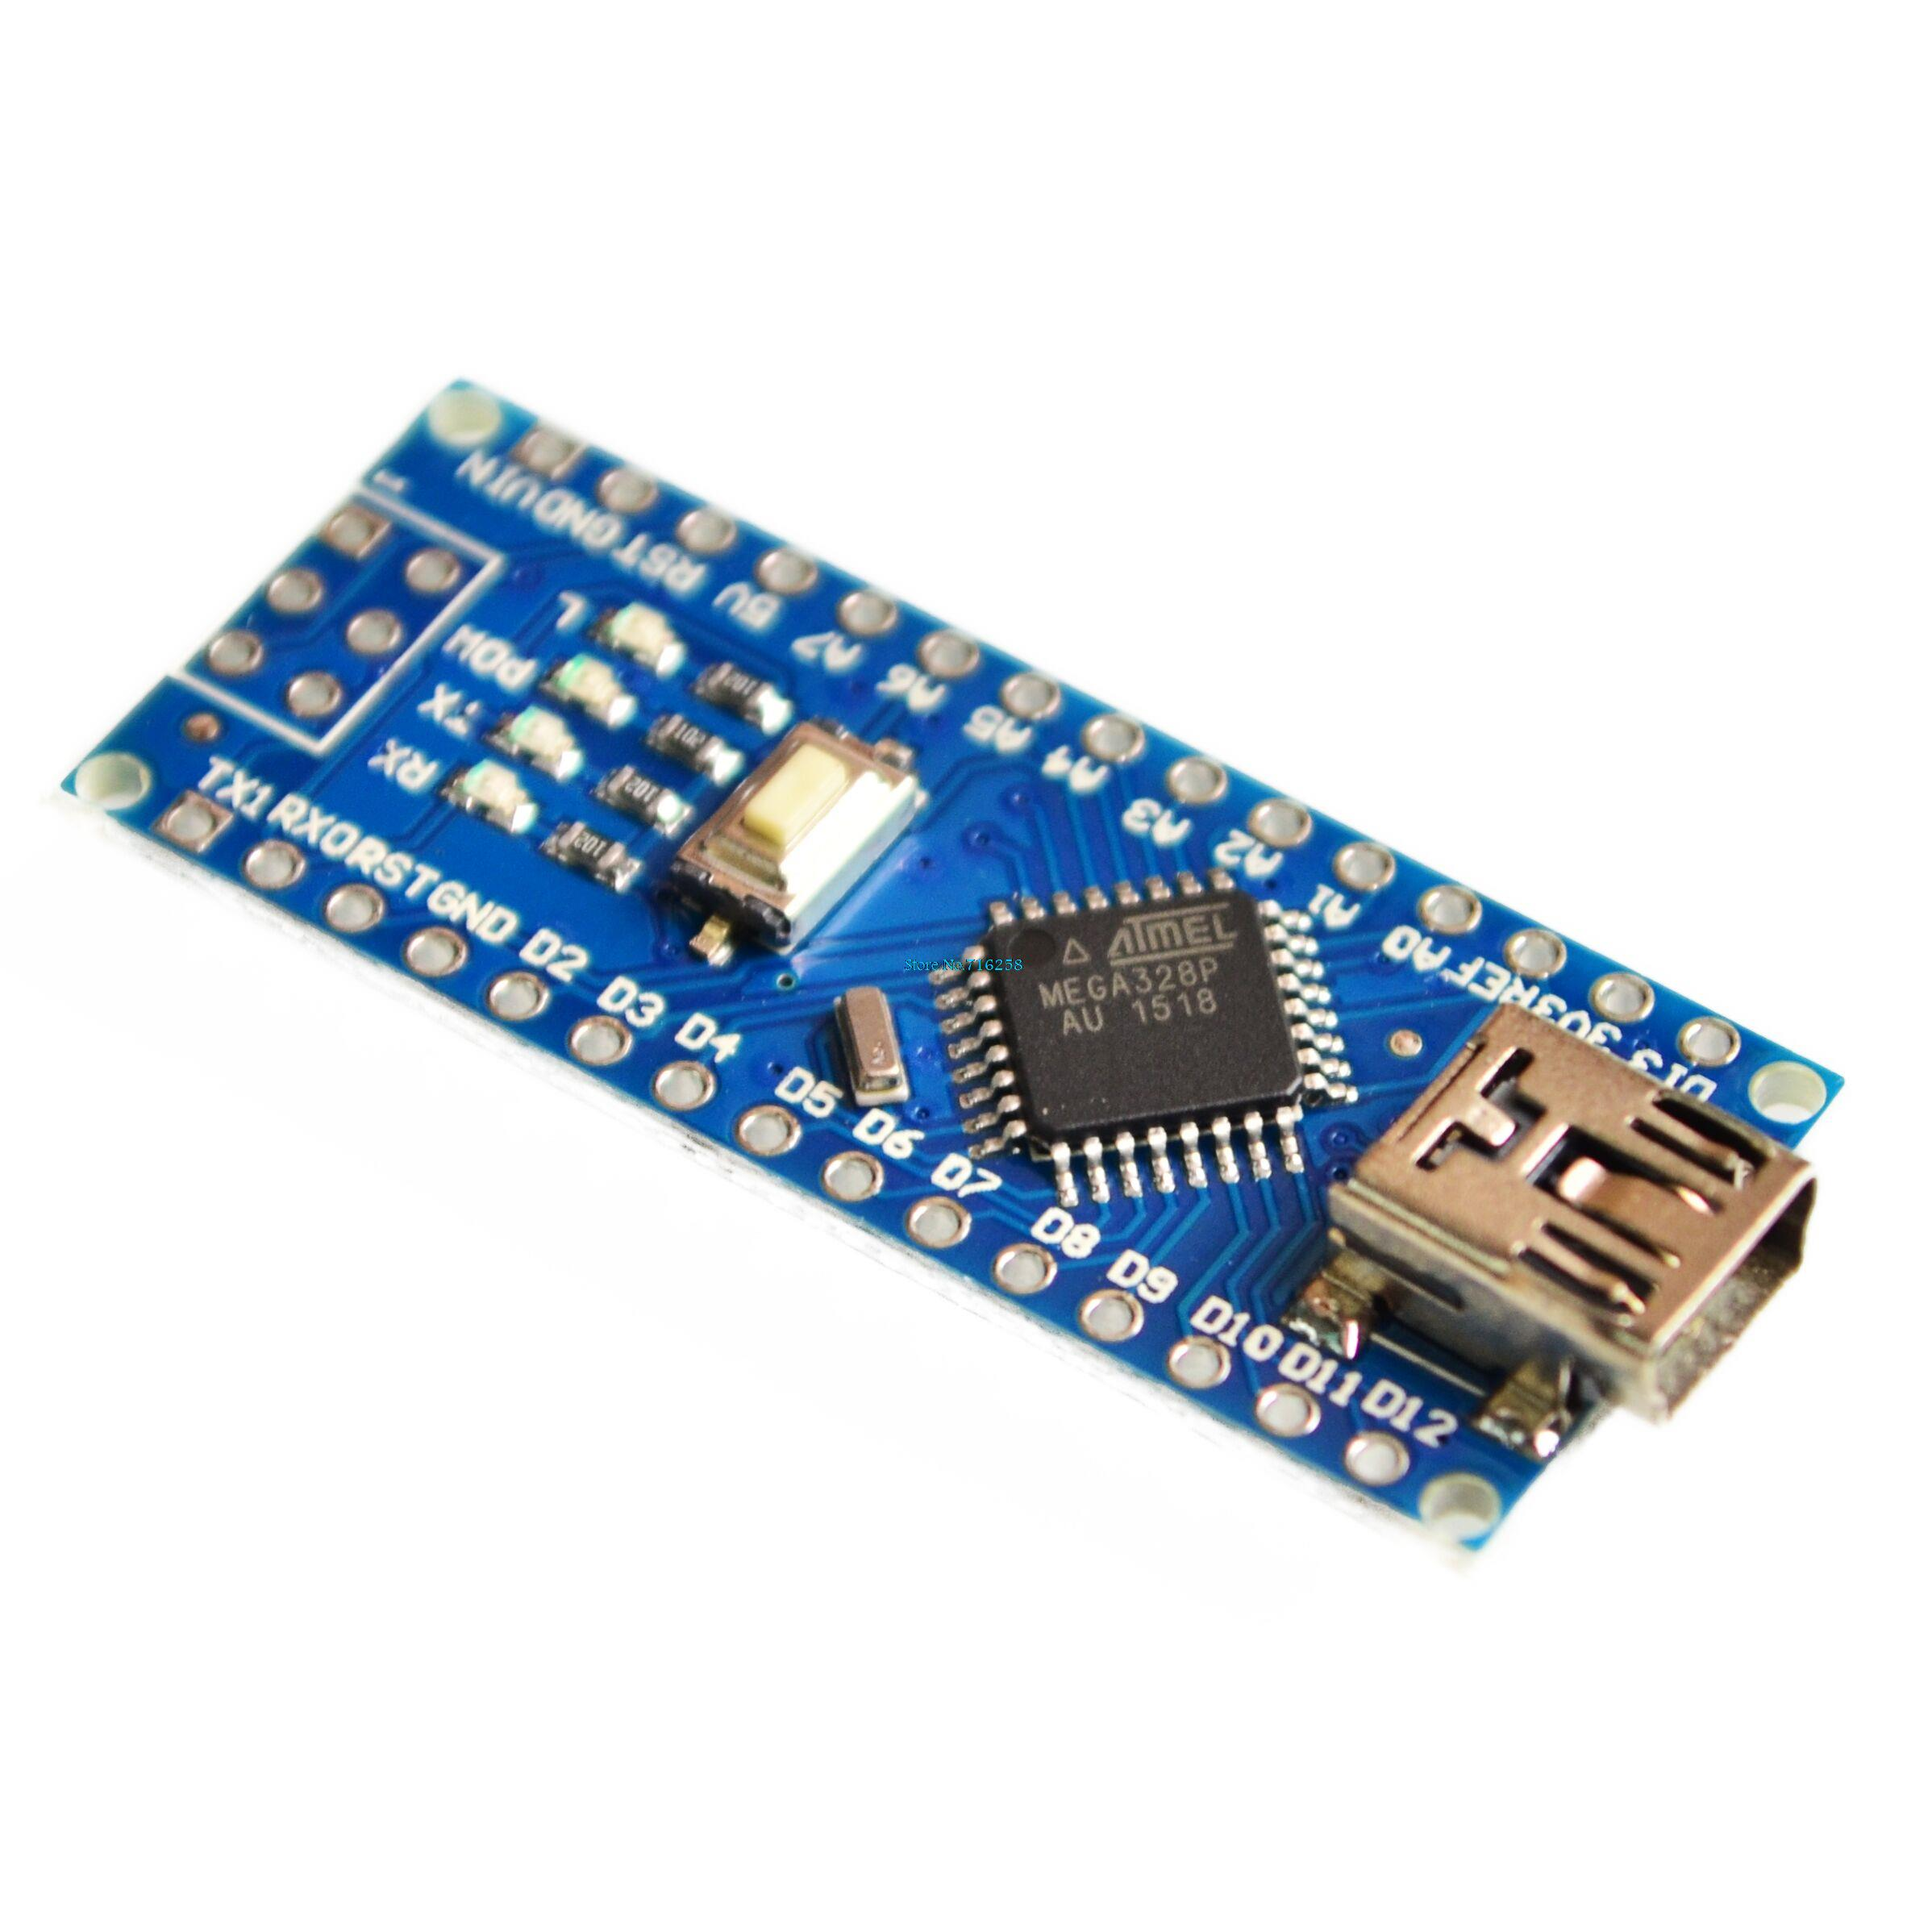 Windows 81 64bit USB-serial driver for Arduino